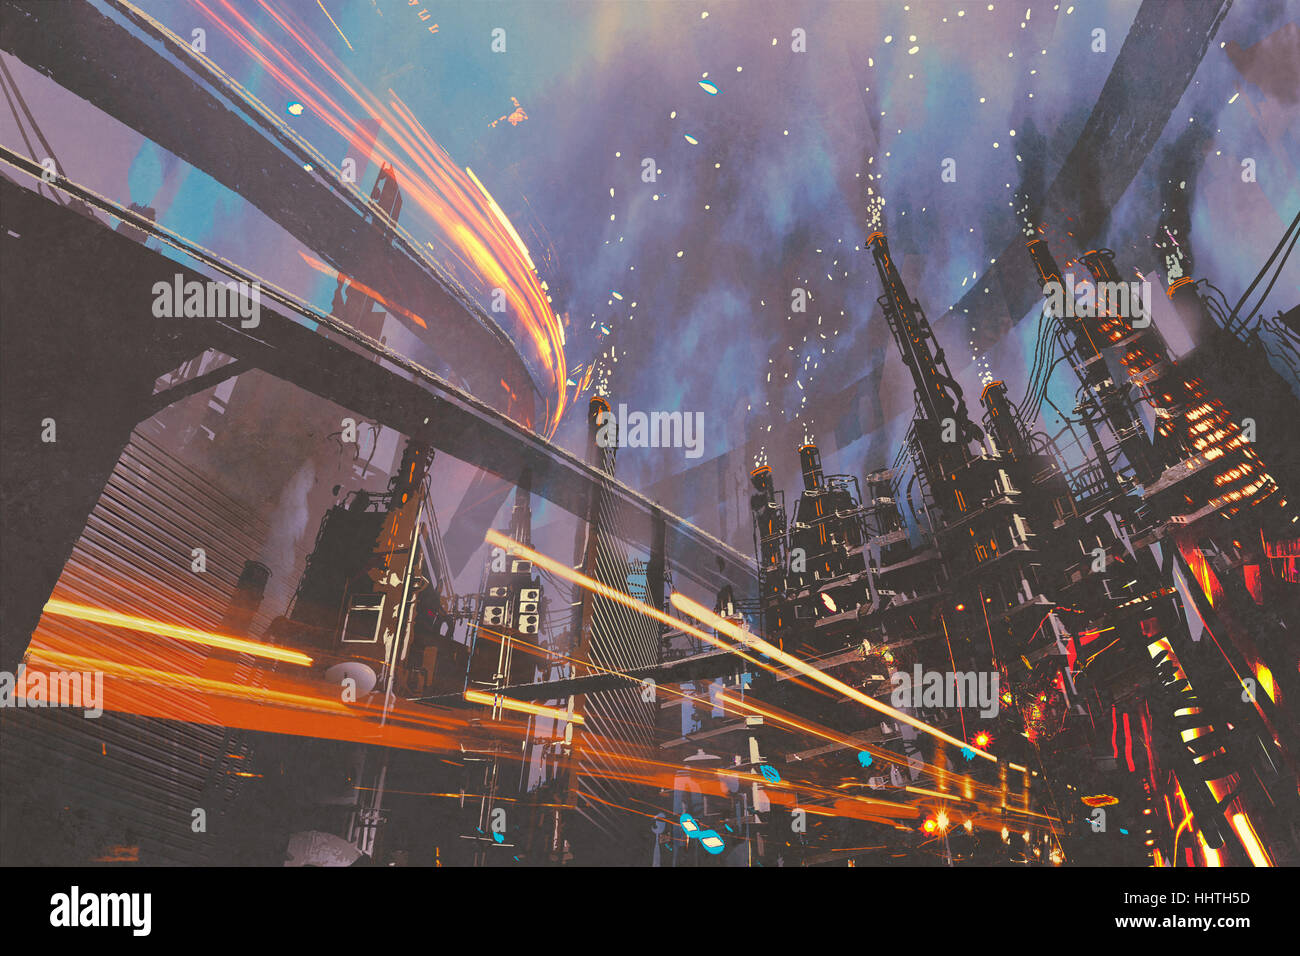 Sci Fi Scenery Of Futuristic City With Industrial Stock